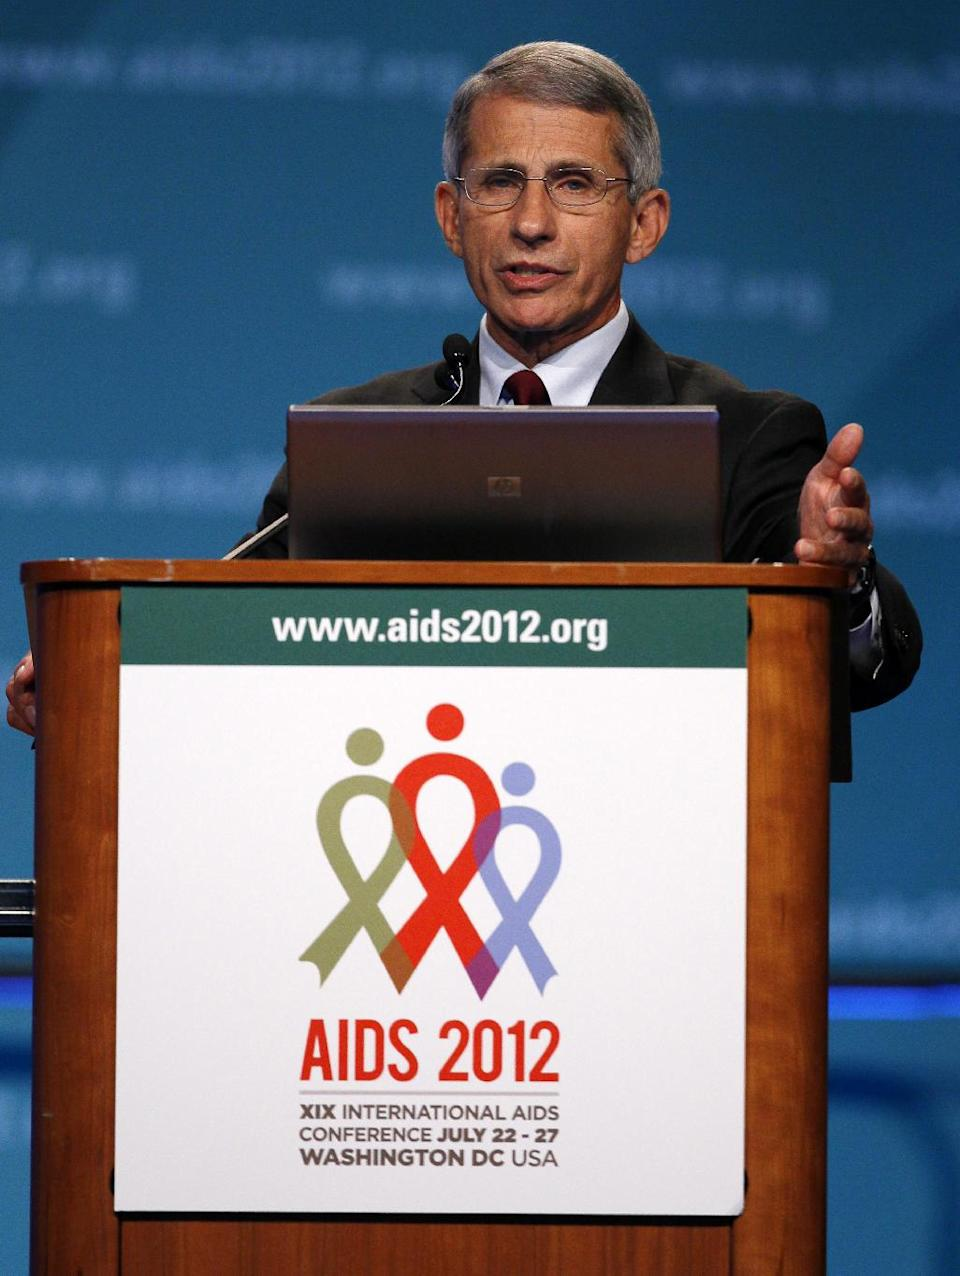 Anthony Fauci of the National Institute of Allergy and Infectious Diseases speaks at the XIX International Aids Conference, Monday, July 23, 2012, in Washington. (AP Photo/Carolyn Kaster)